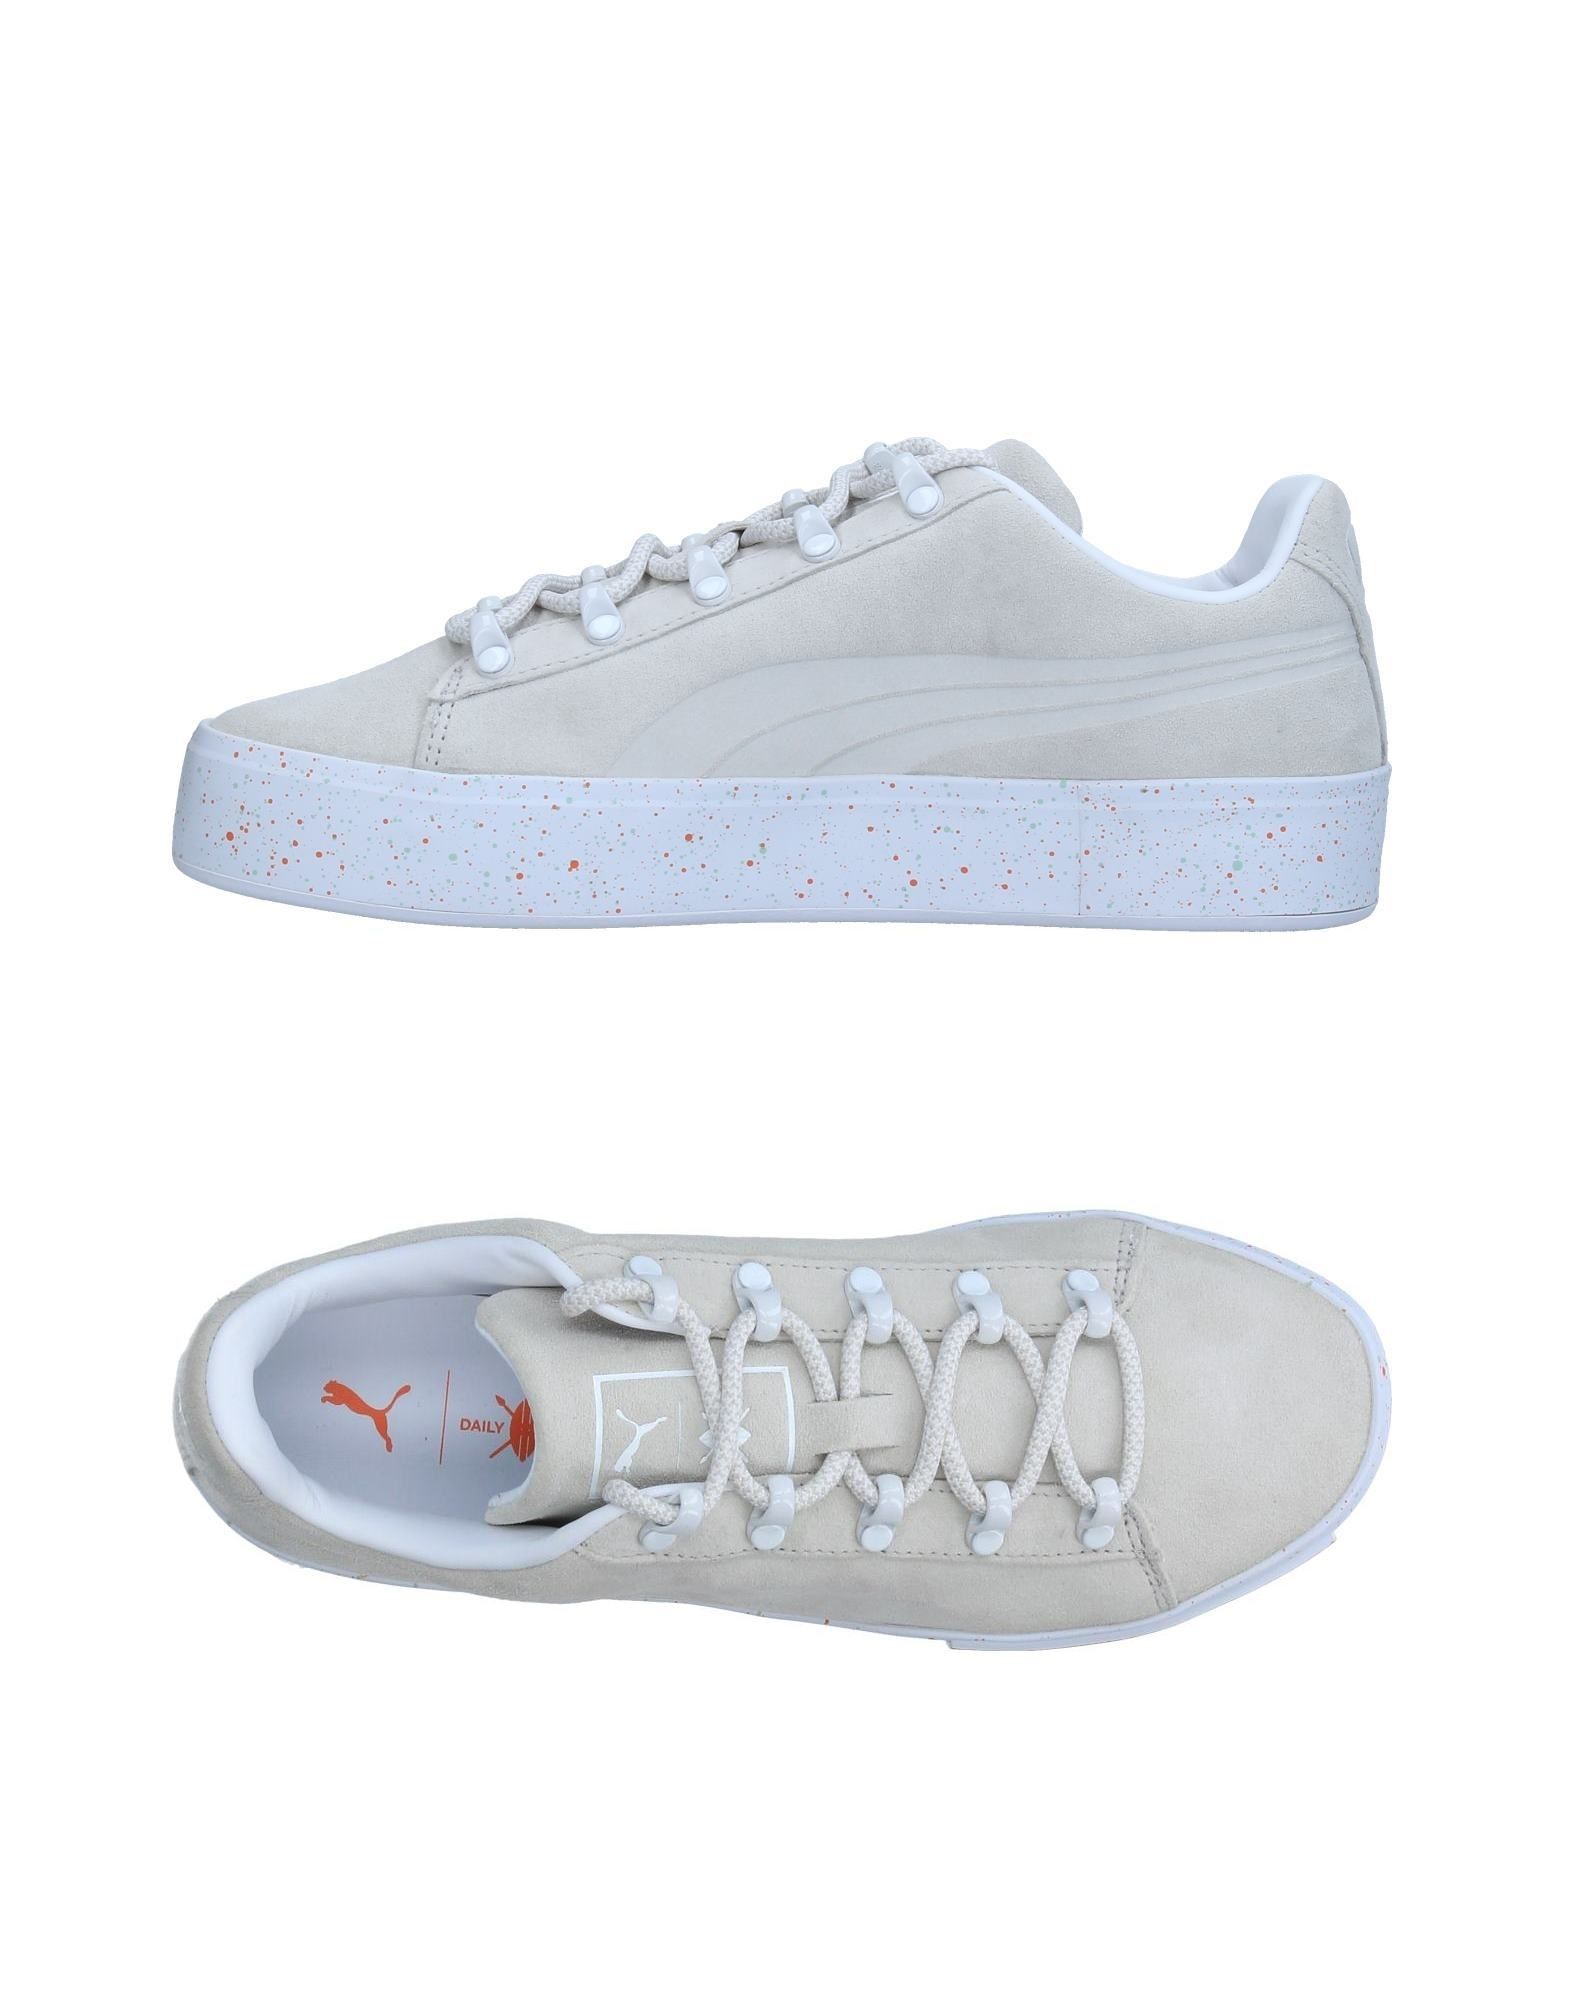 Sneakers Puma X Daily Paper Donna - 11326501CD